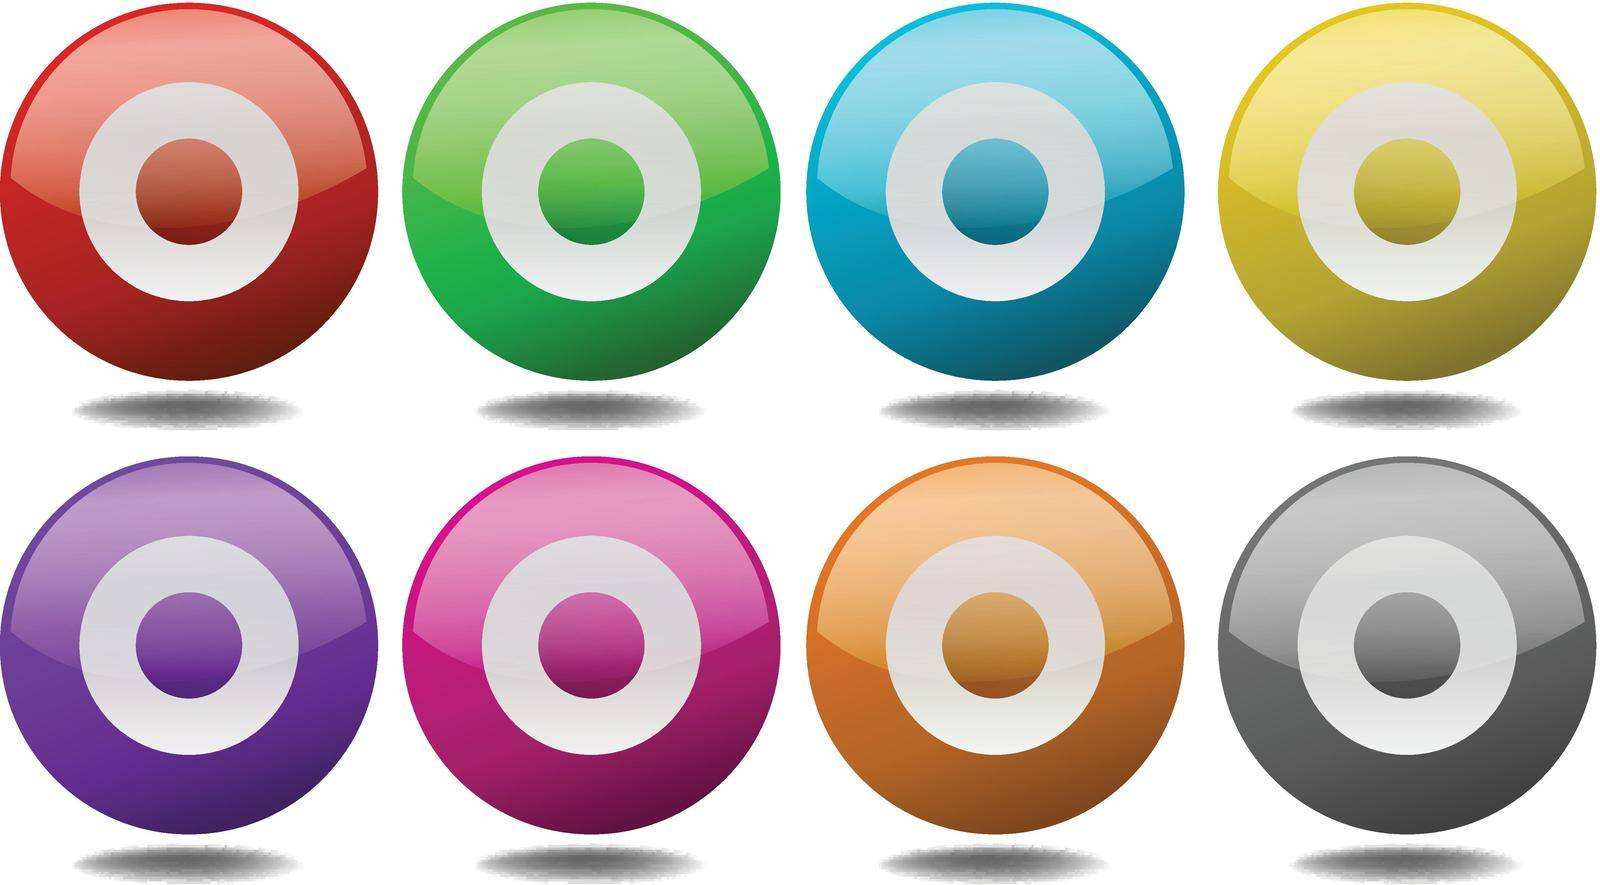 Round targets in eight different colors